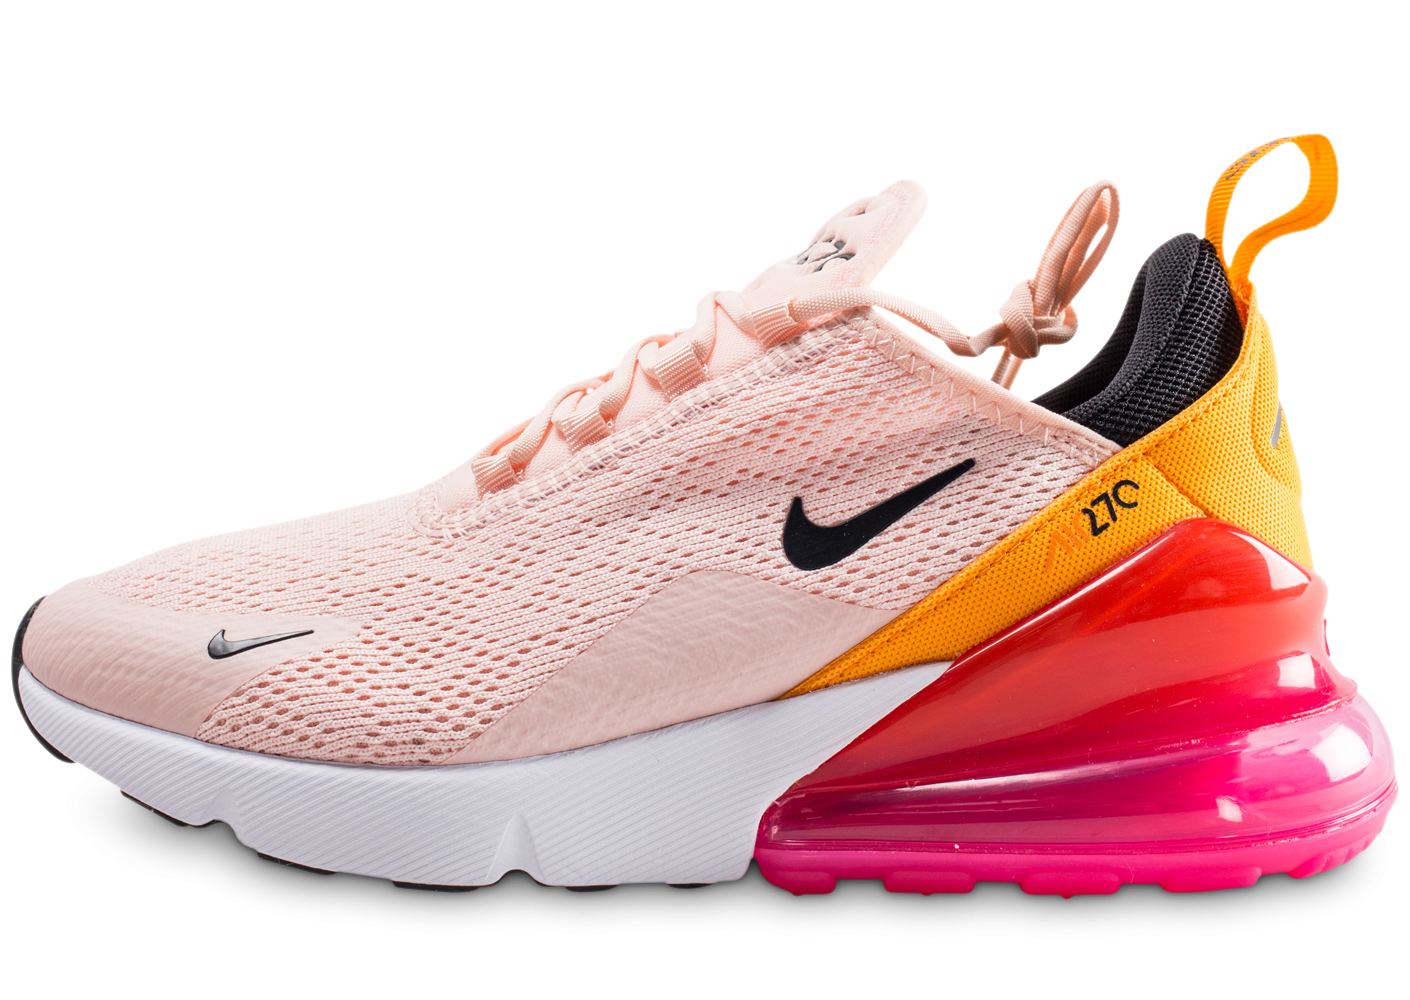 meilleur site web 8e980 131b3 Nike Air Max 270 rose et orange femme